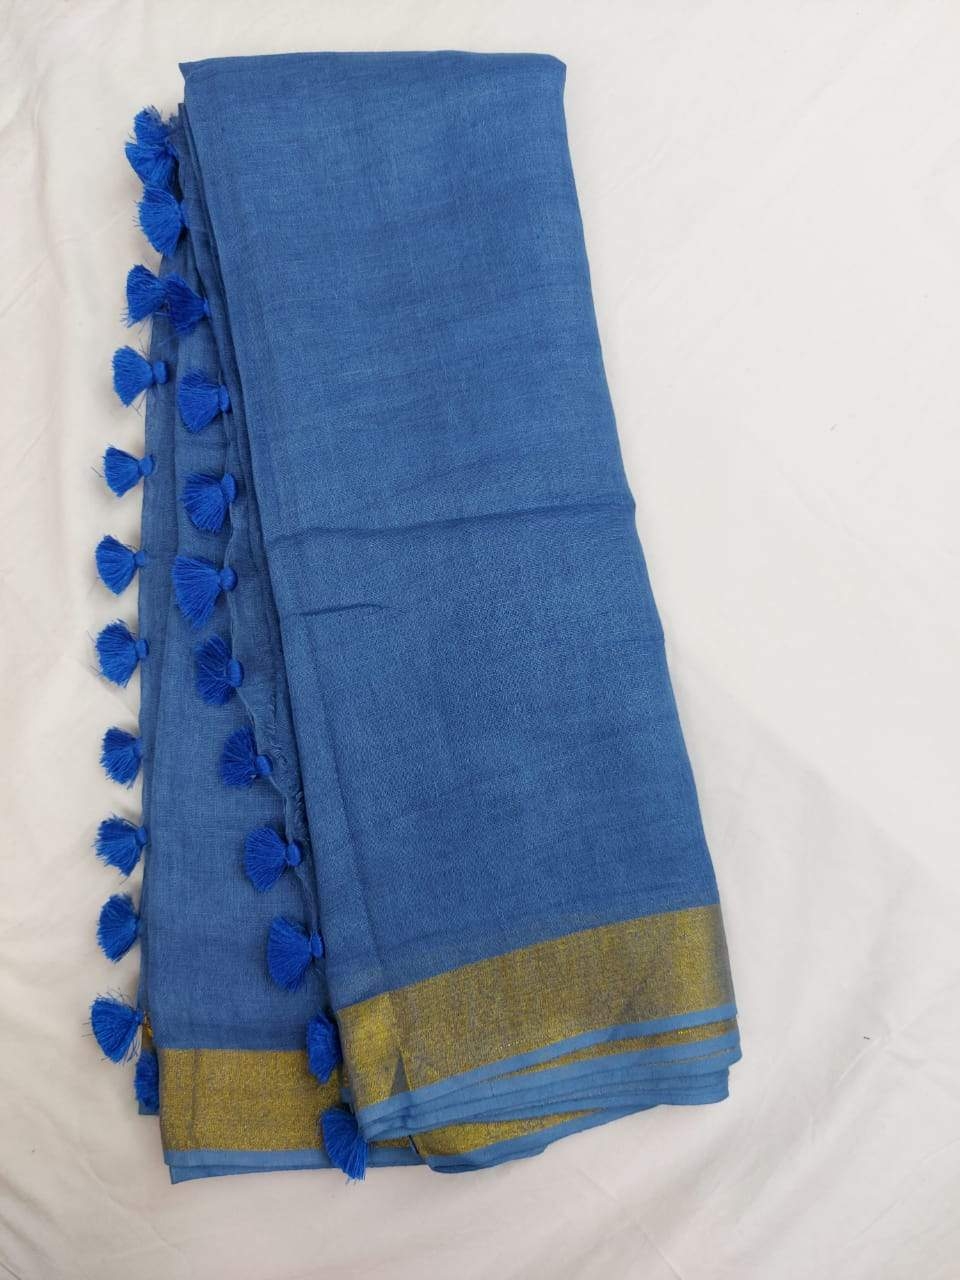 Pure Linen Saree Blue,Best rates of line sarees in india, wholesale linen sarees online